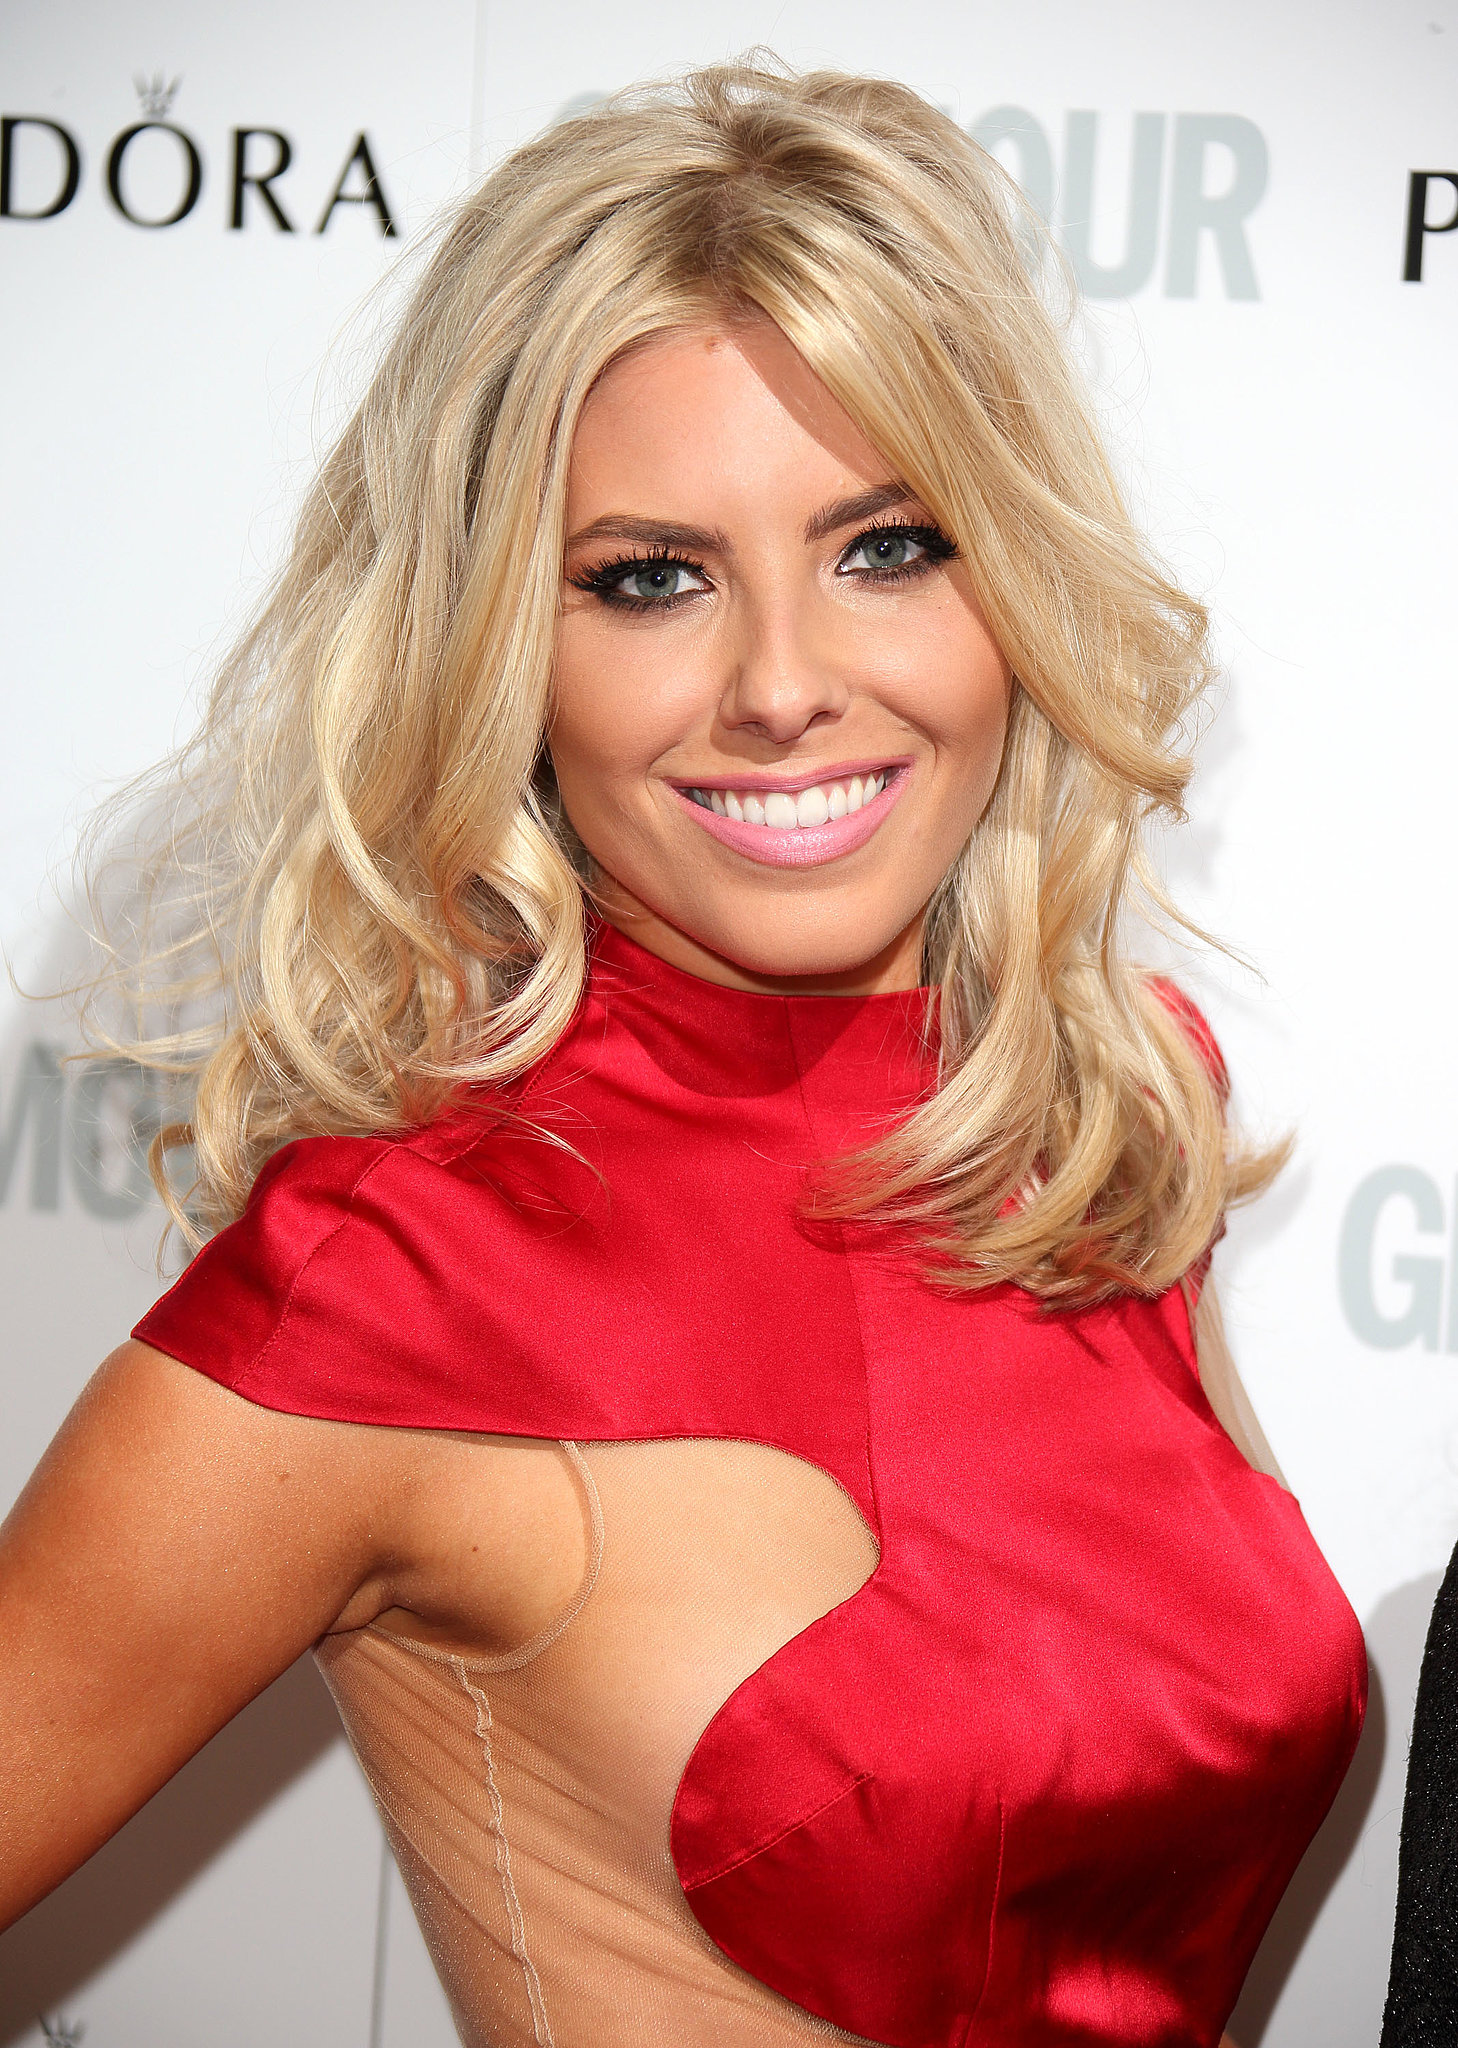 Mollie King wallpapers, Music, HQ Mollie King pictures | 4K